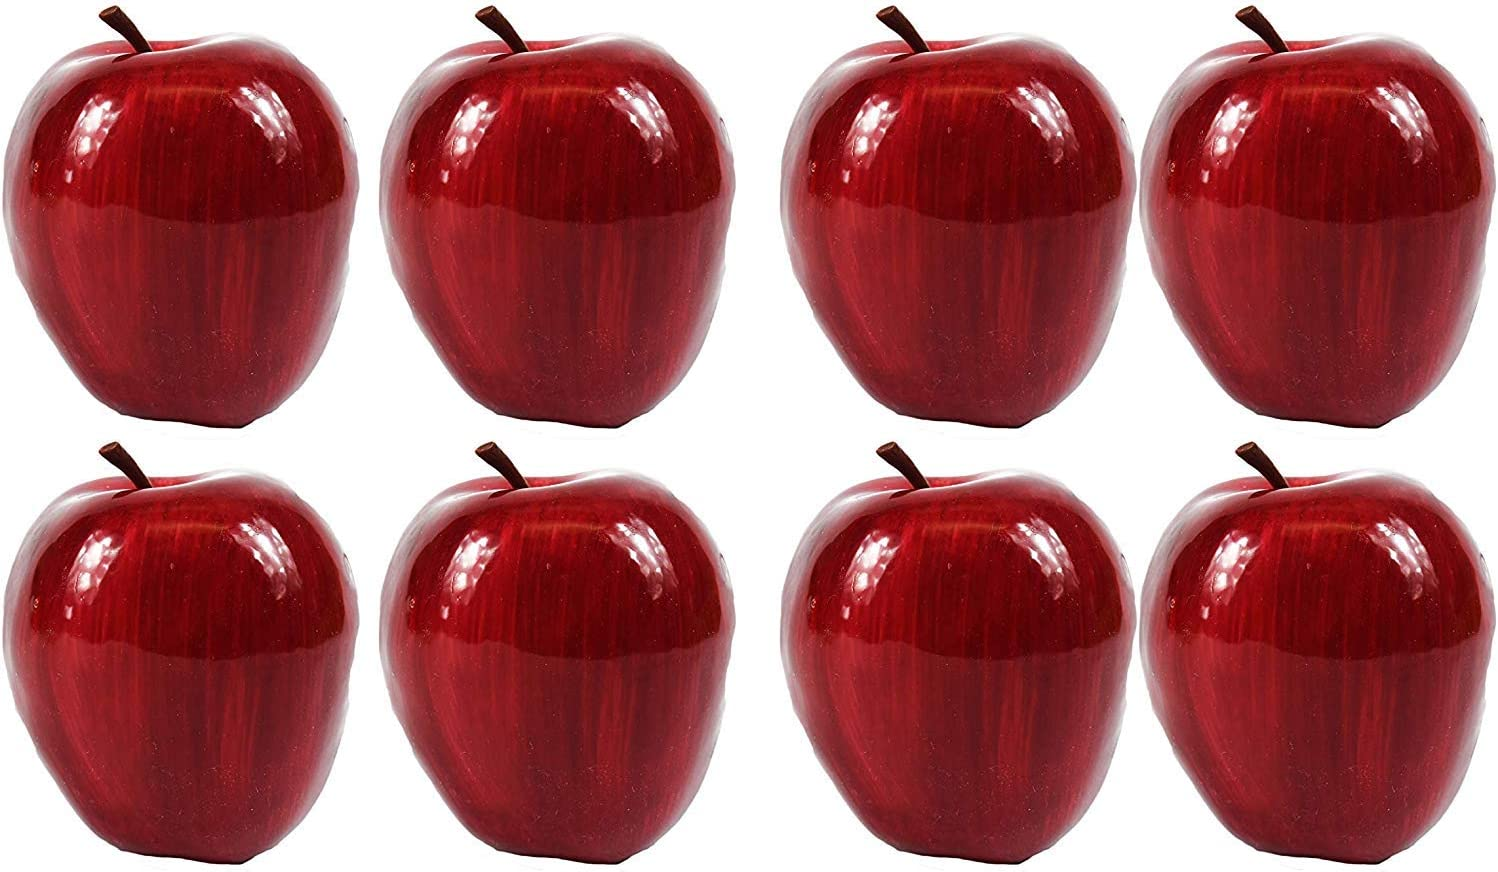 Set of 8 Faux Fruit Red Apples! Perfect For Home Decor And School Projects!